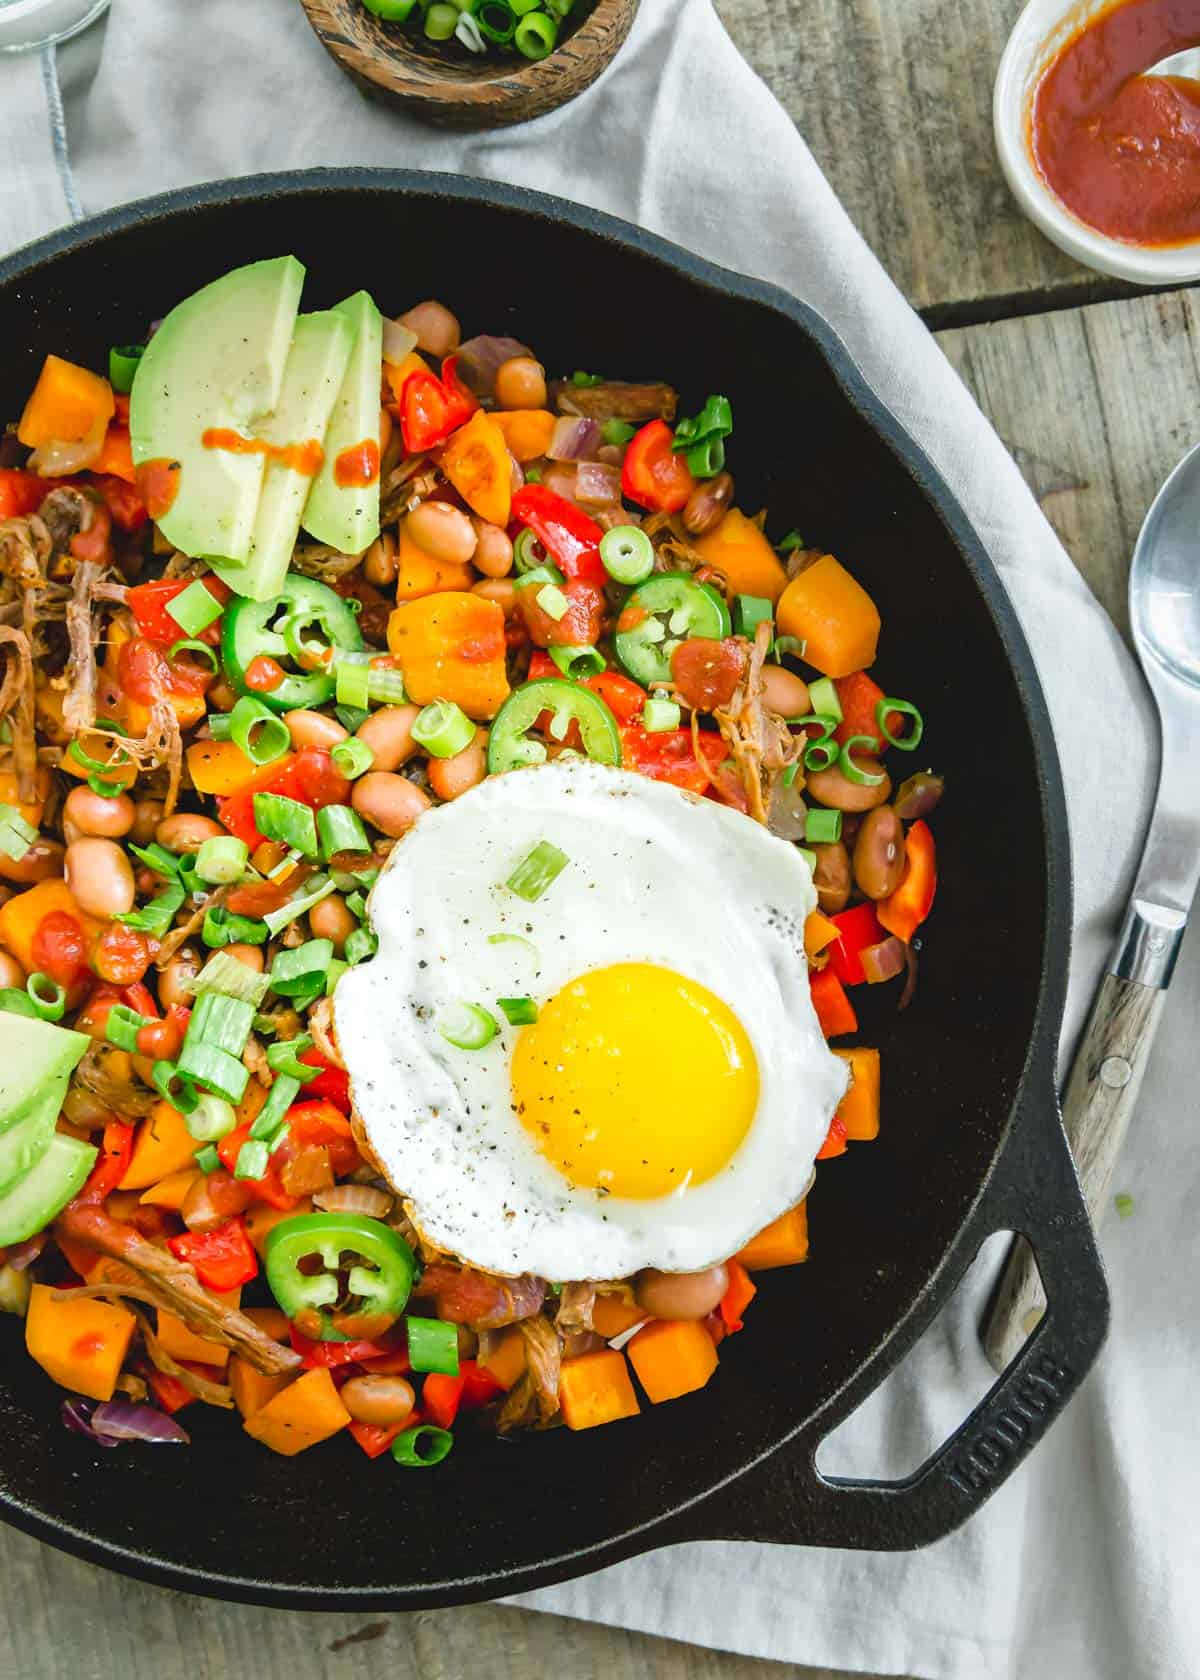 This easy skillet brisket hash recipe includes beans, sweet potatoes, peppers and a fried egg on top.